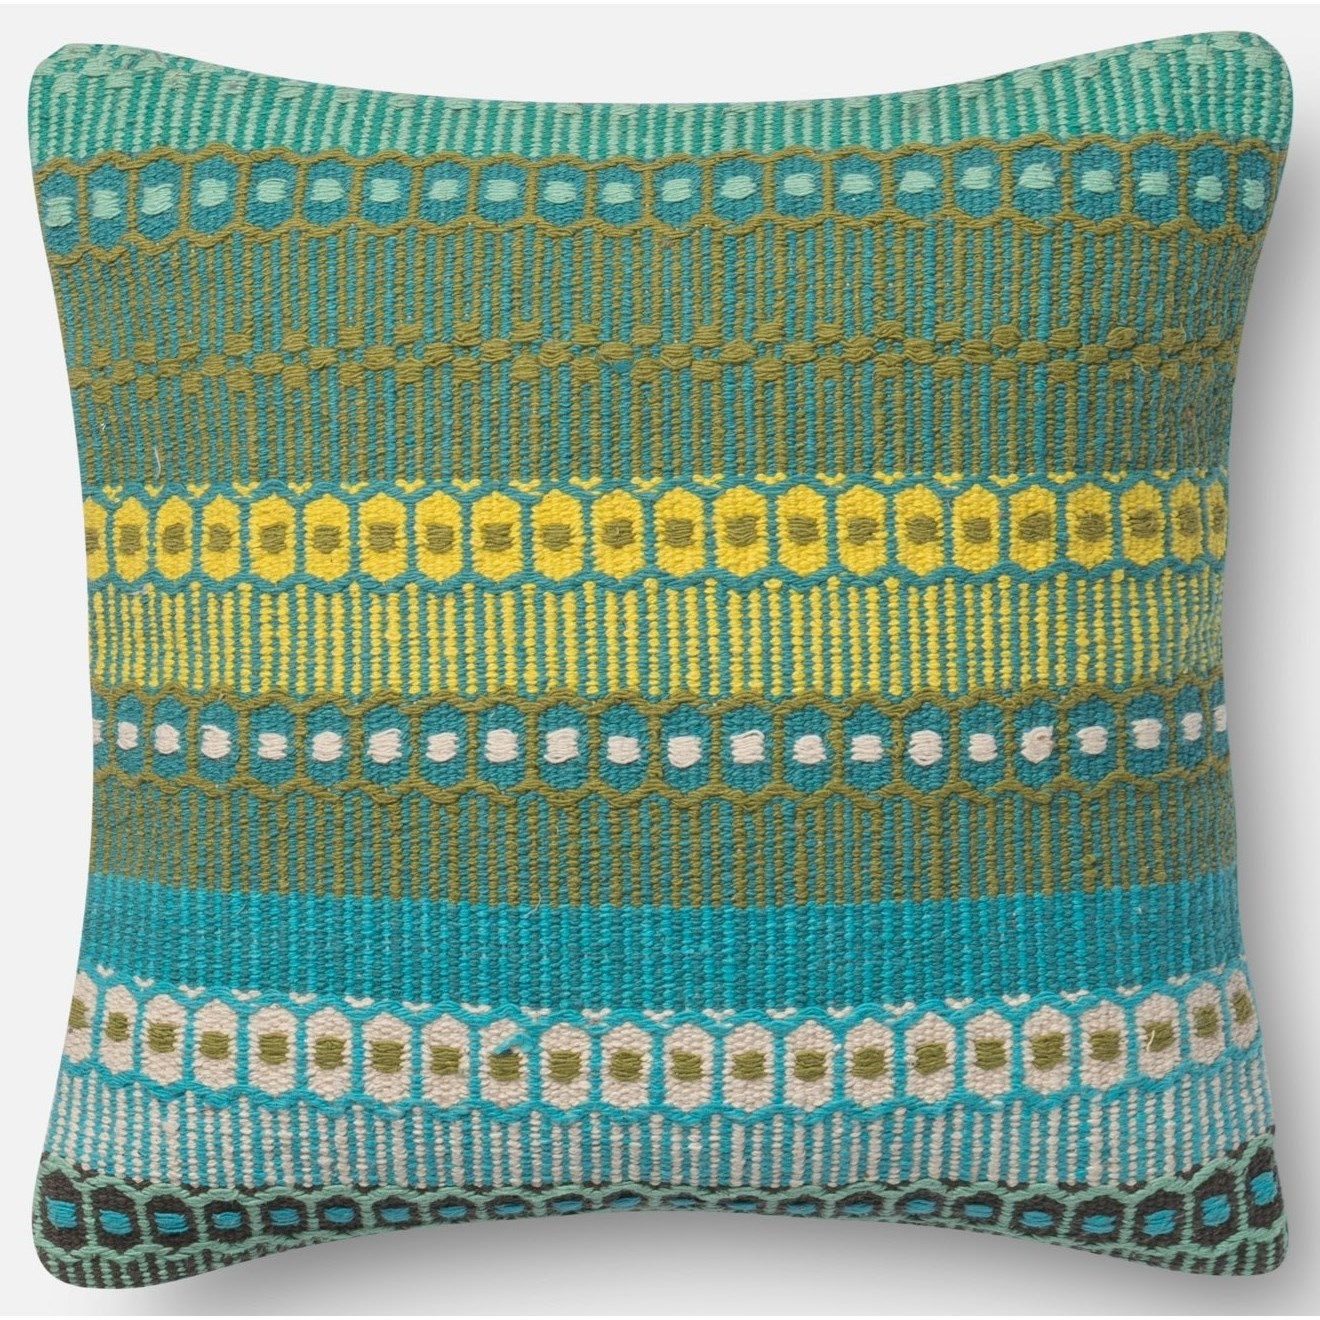 "Accent Pillows 18"" X 18"" Down Pillow by Loloi Rugs at Virginia Furniture Market"